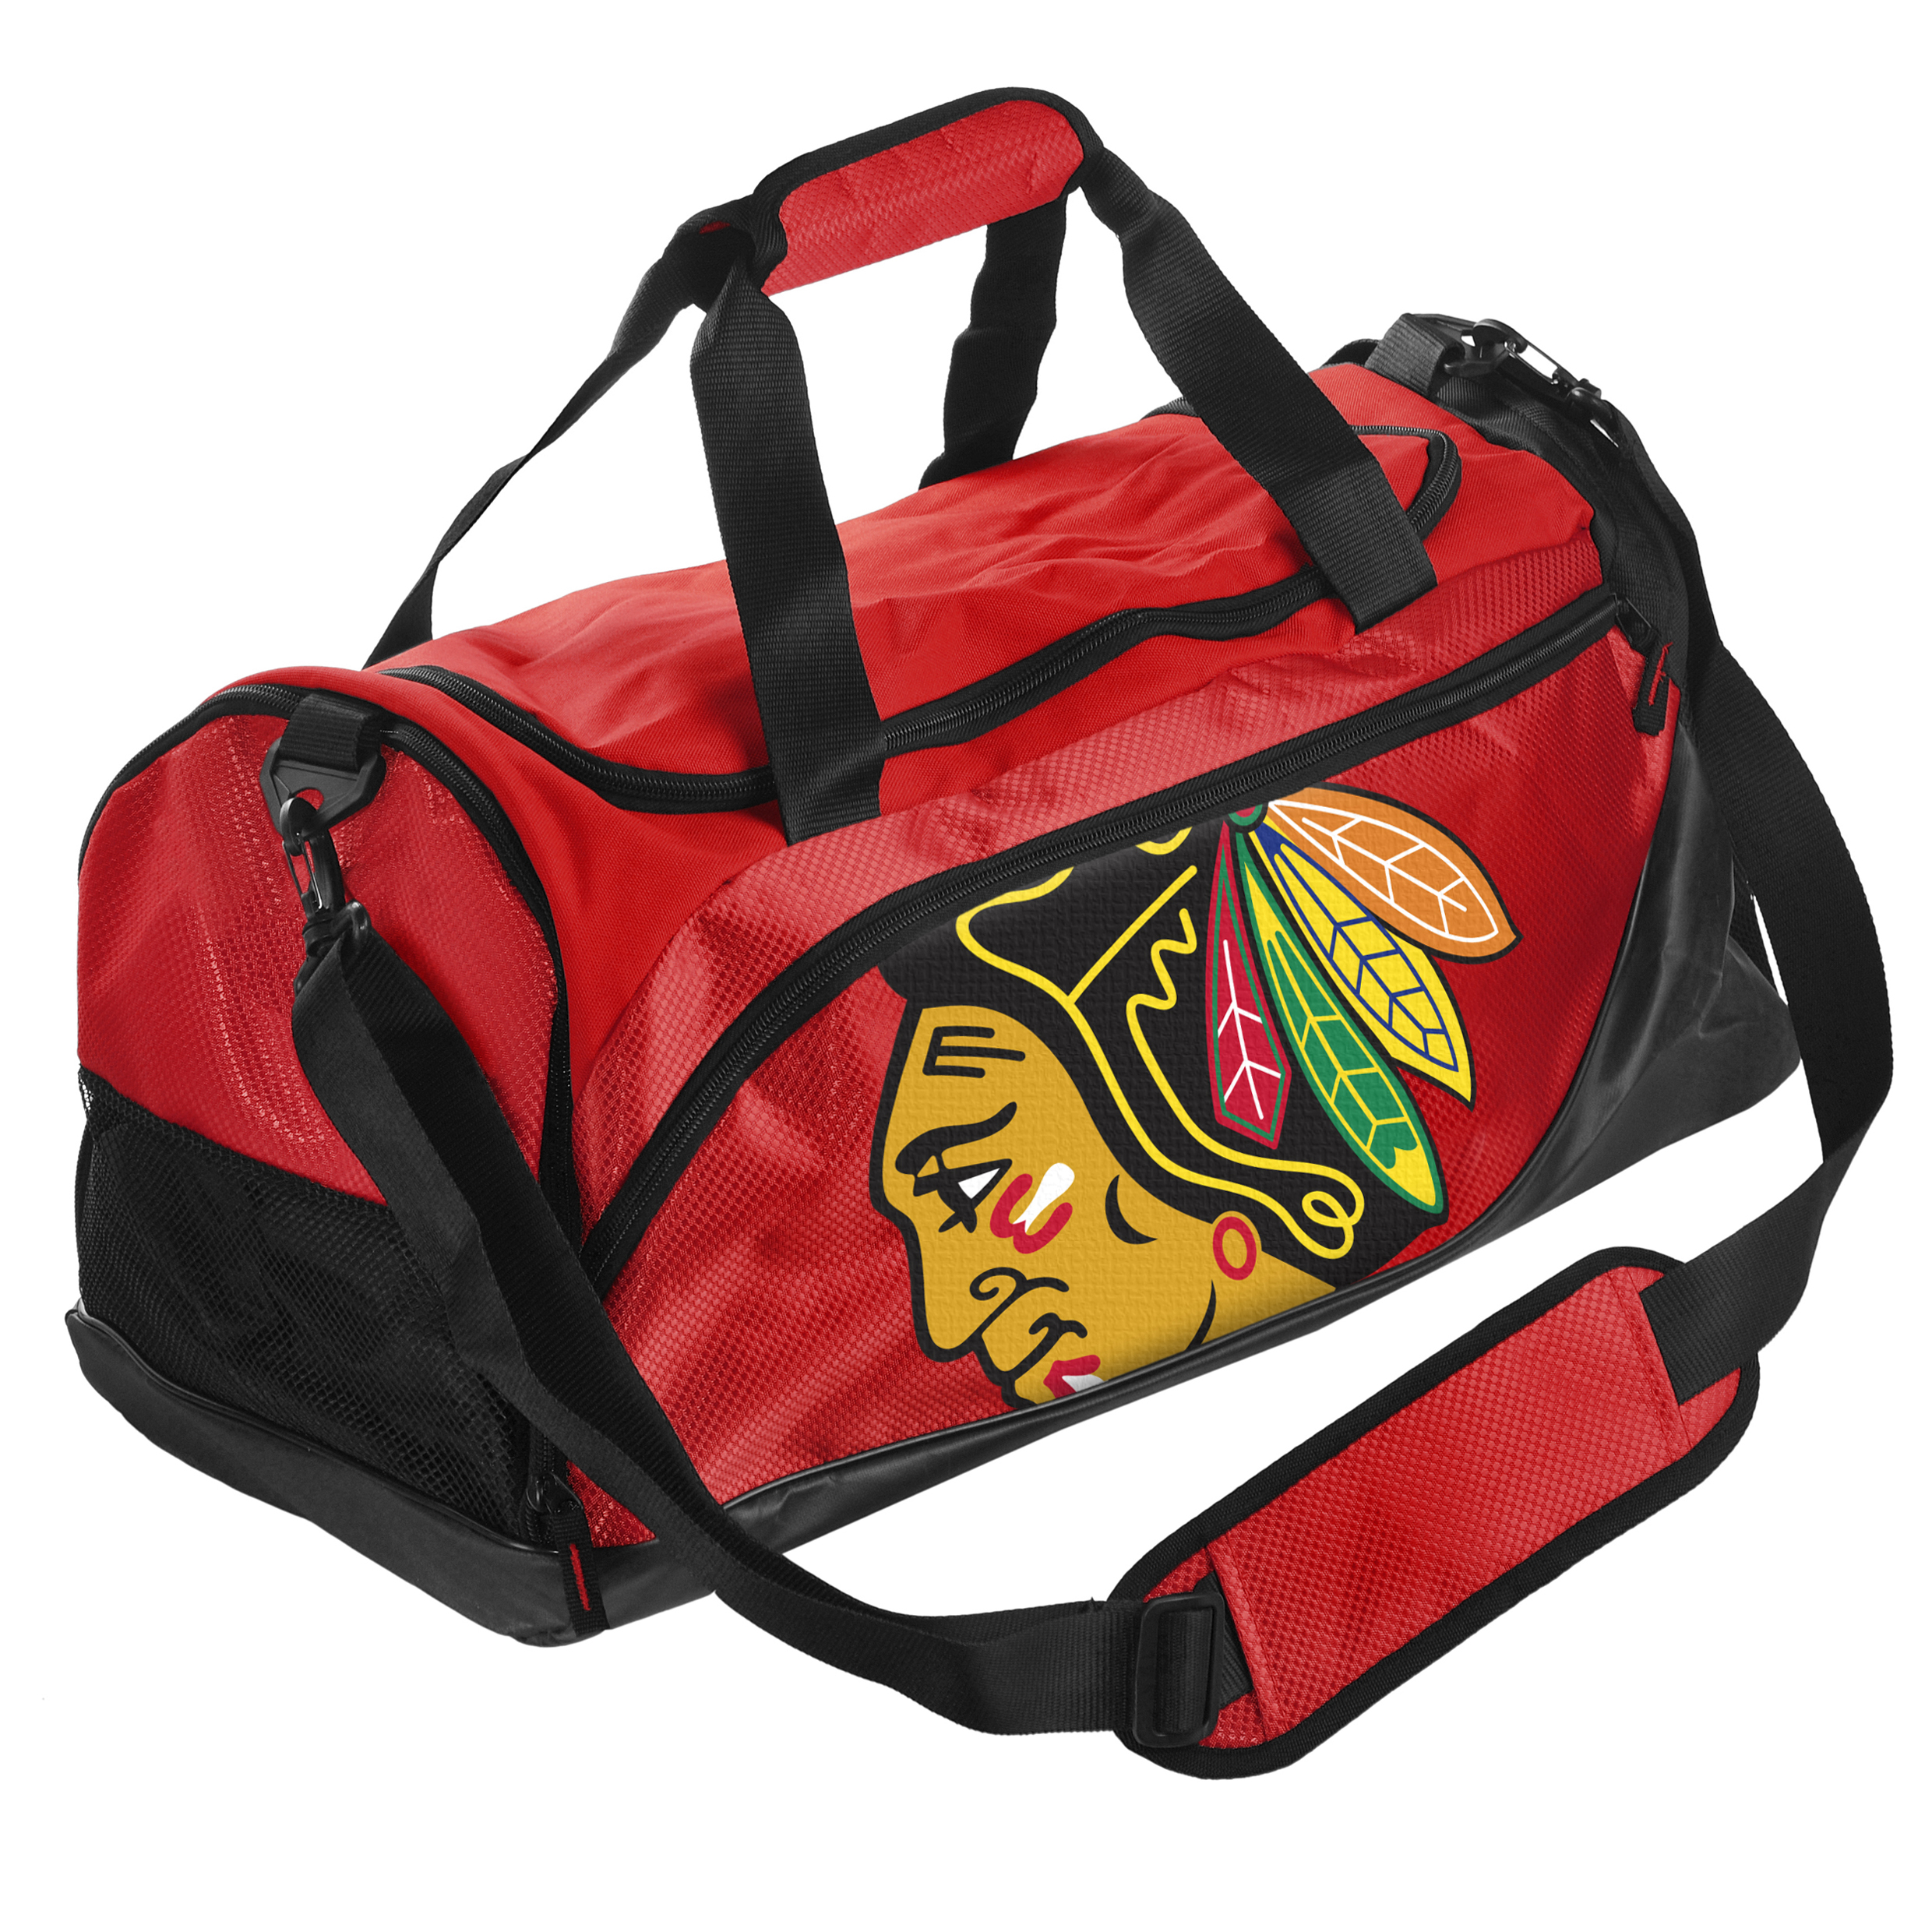 Chicago Blackhawks Locker Room Duffle Bag